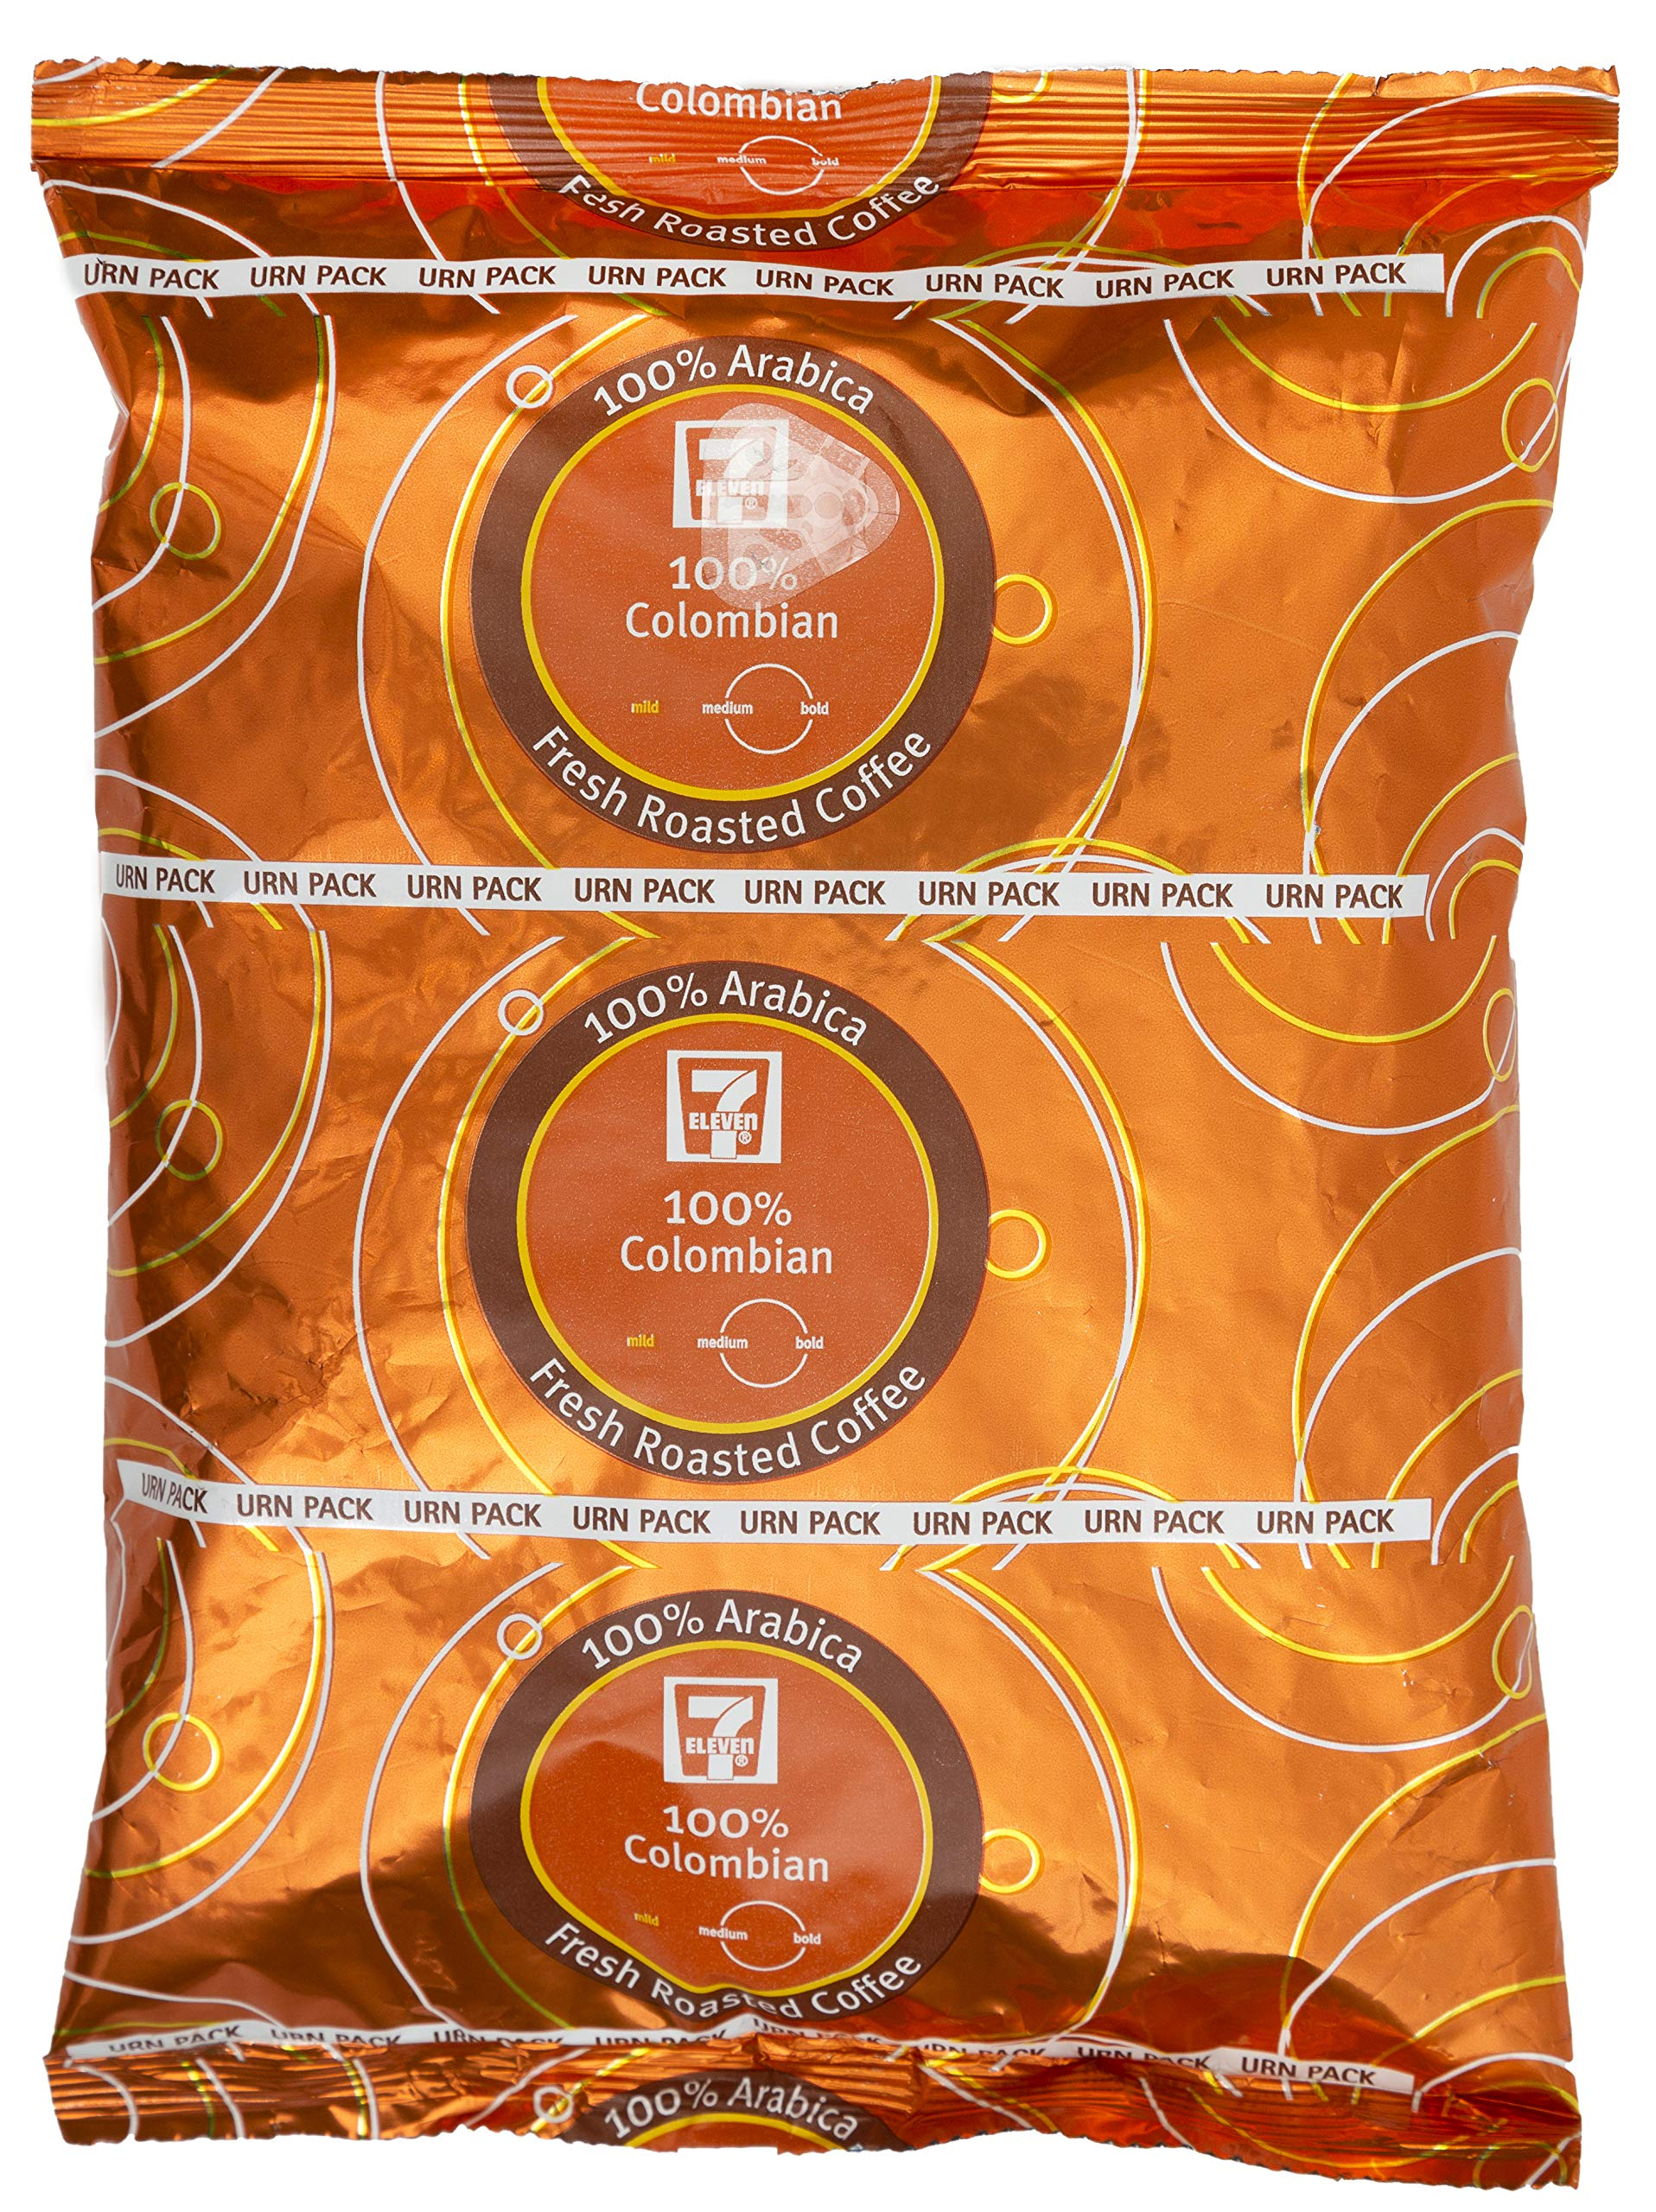 7-Eleven Whole Bean Coffee, 1 lb. Bags, 9-Pack (100% Colombian)